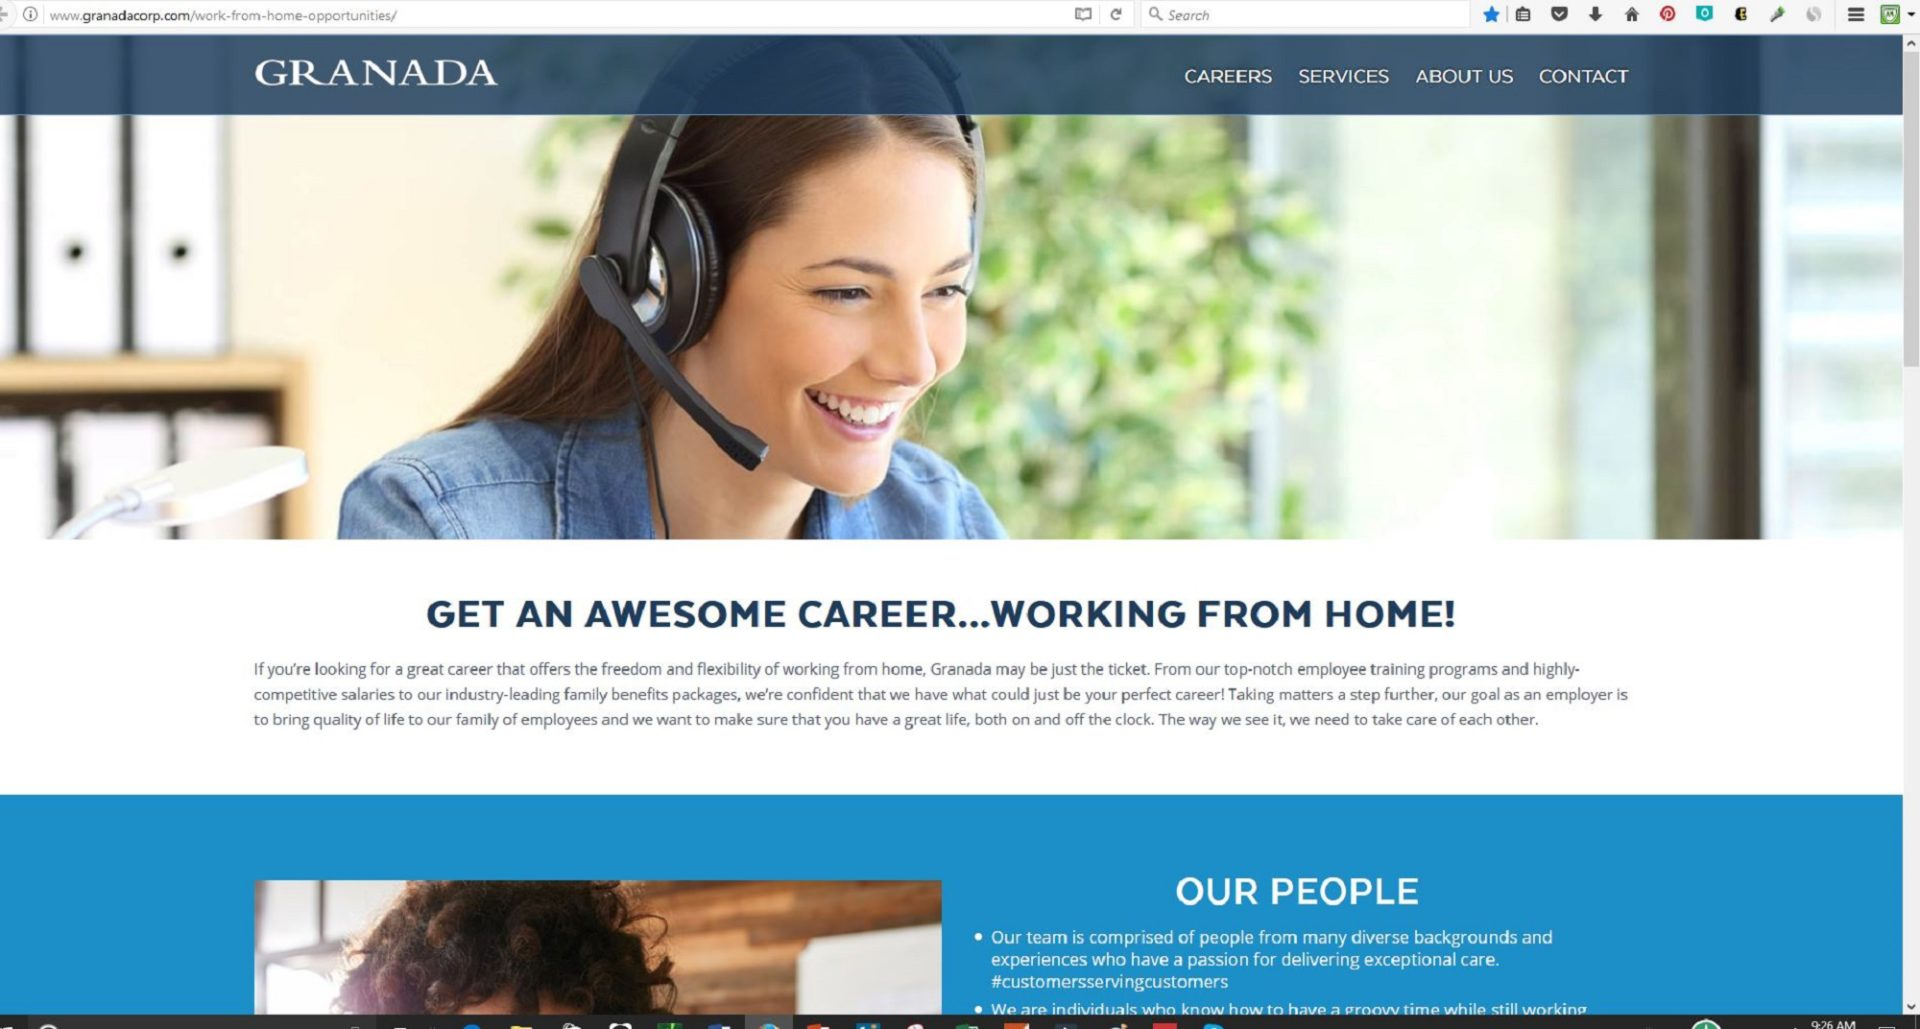 Granada Corp is Hiring Work at Home Agents in 6 States